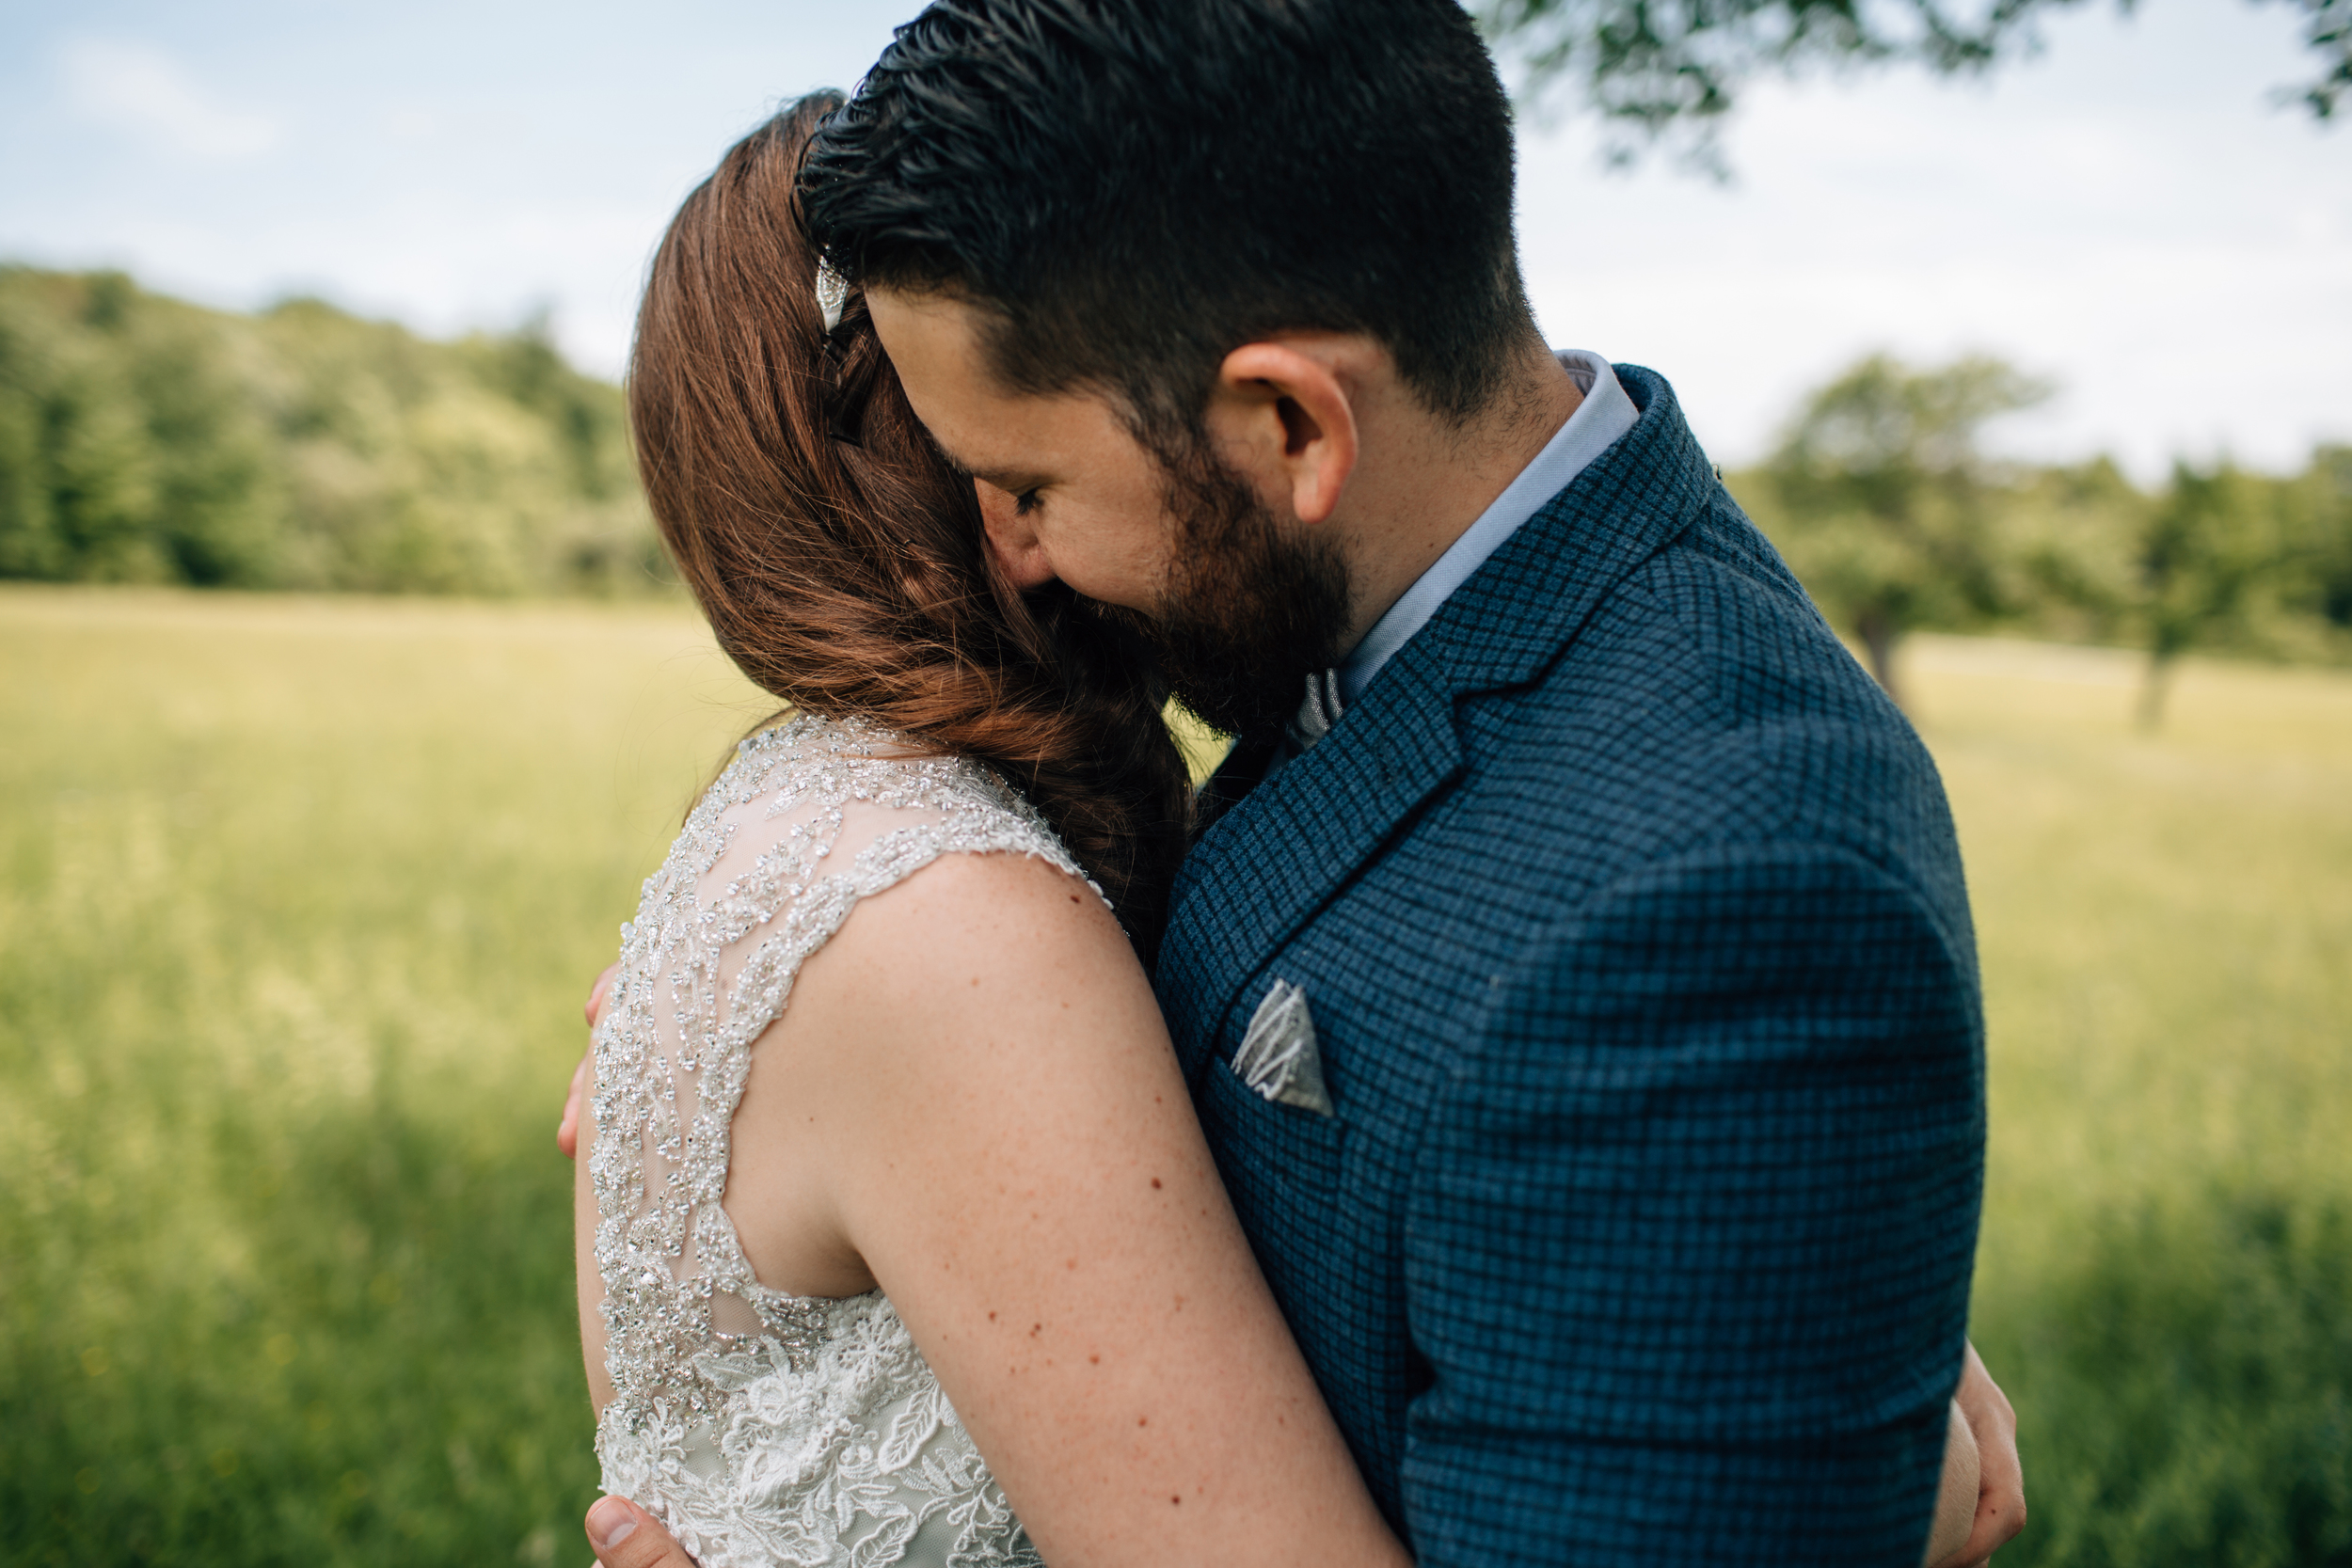 KELLIandBRADweddingJUNE2015 - portraits (109 of 142).jpg